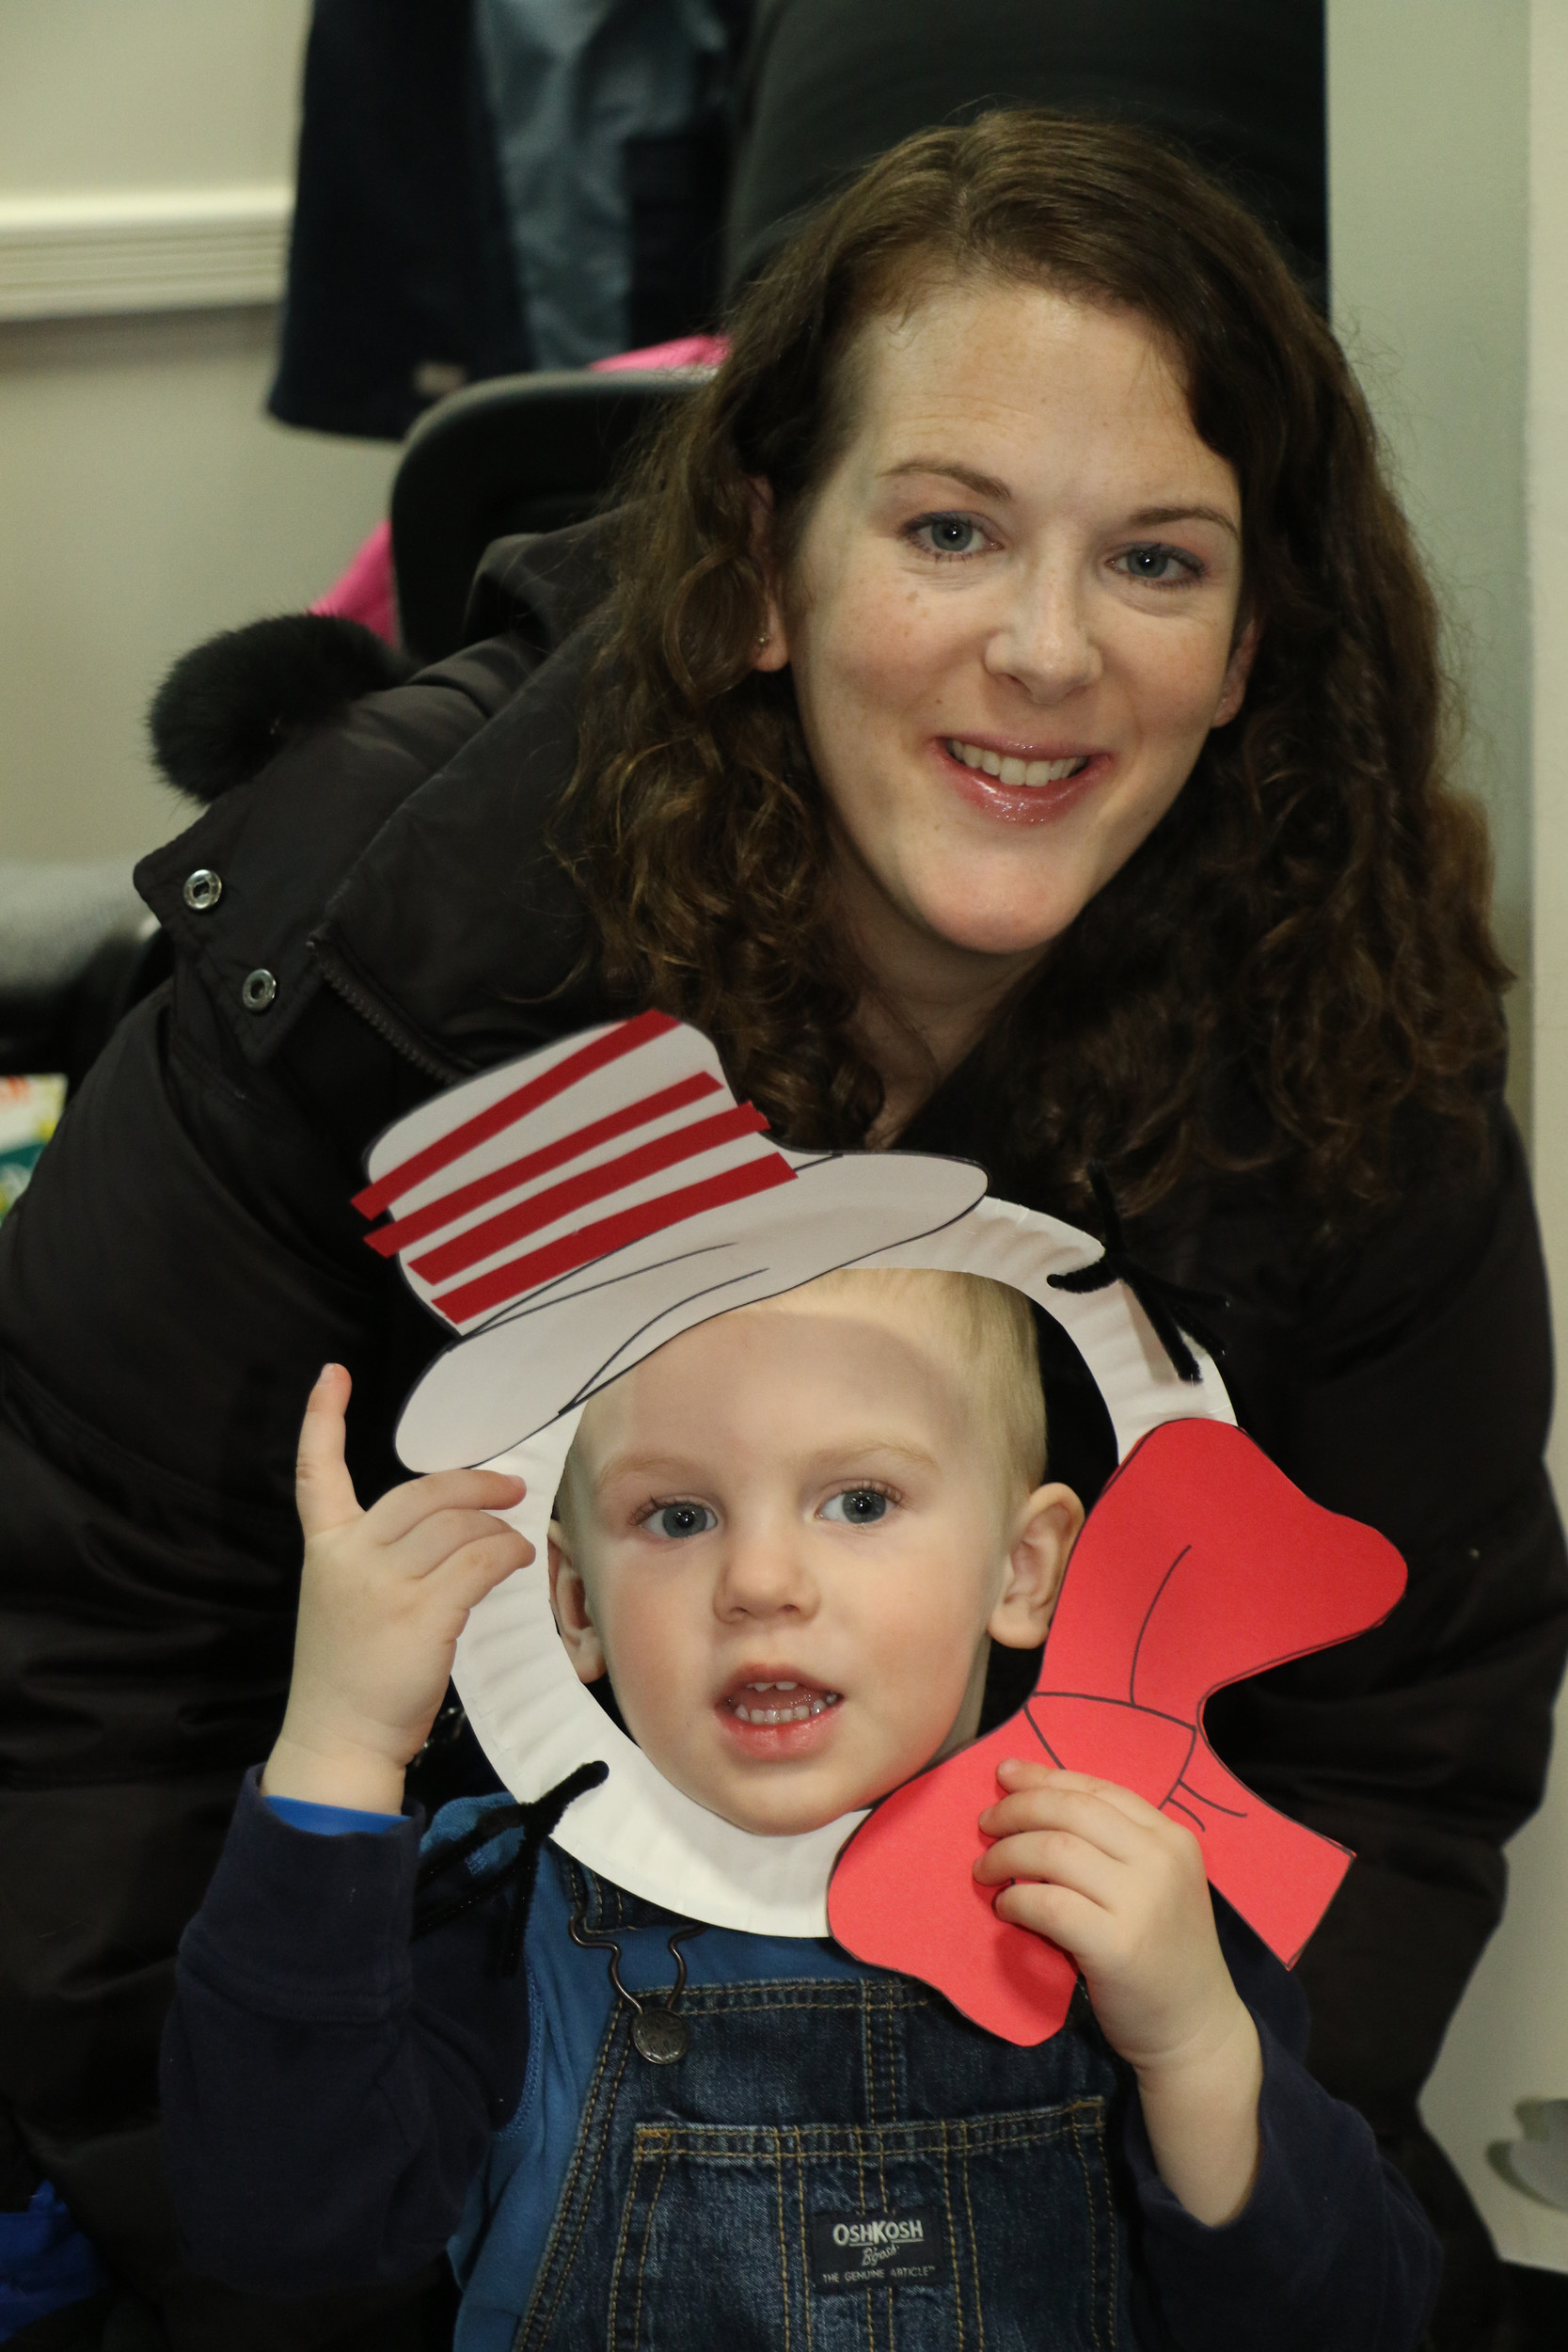 Lauren Ribera and her 3-year-old son, James, made crafts, read stories, and saw a show at the event.